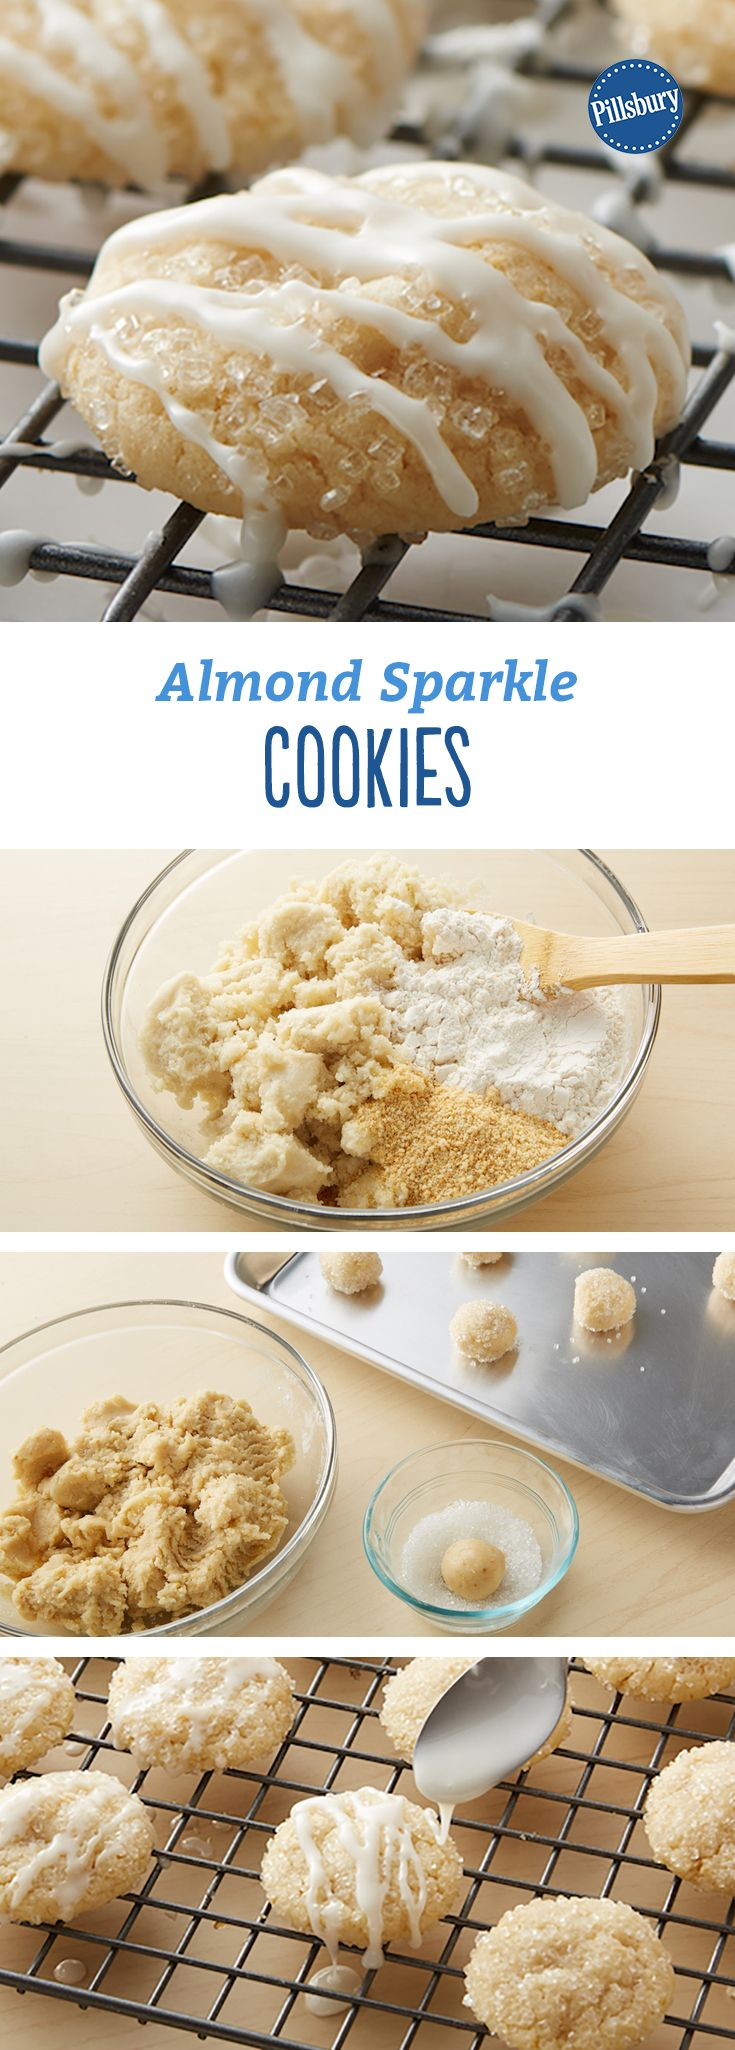 Almond Sparkle Cookies: These cute and easy holiday almond cookies sparkle like freshly fallen snow!